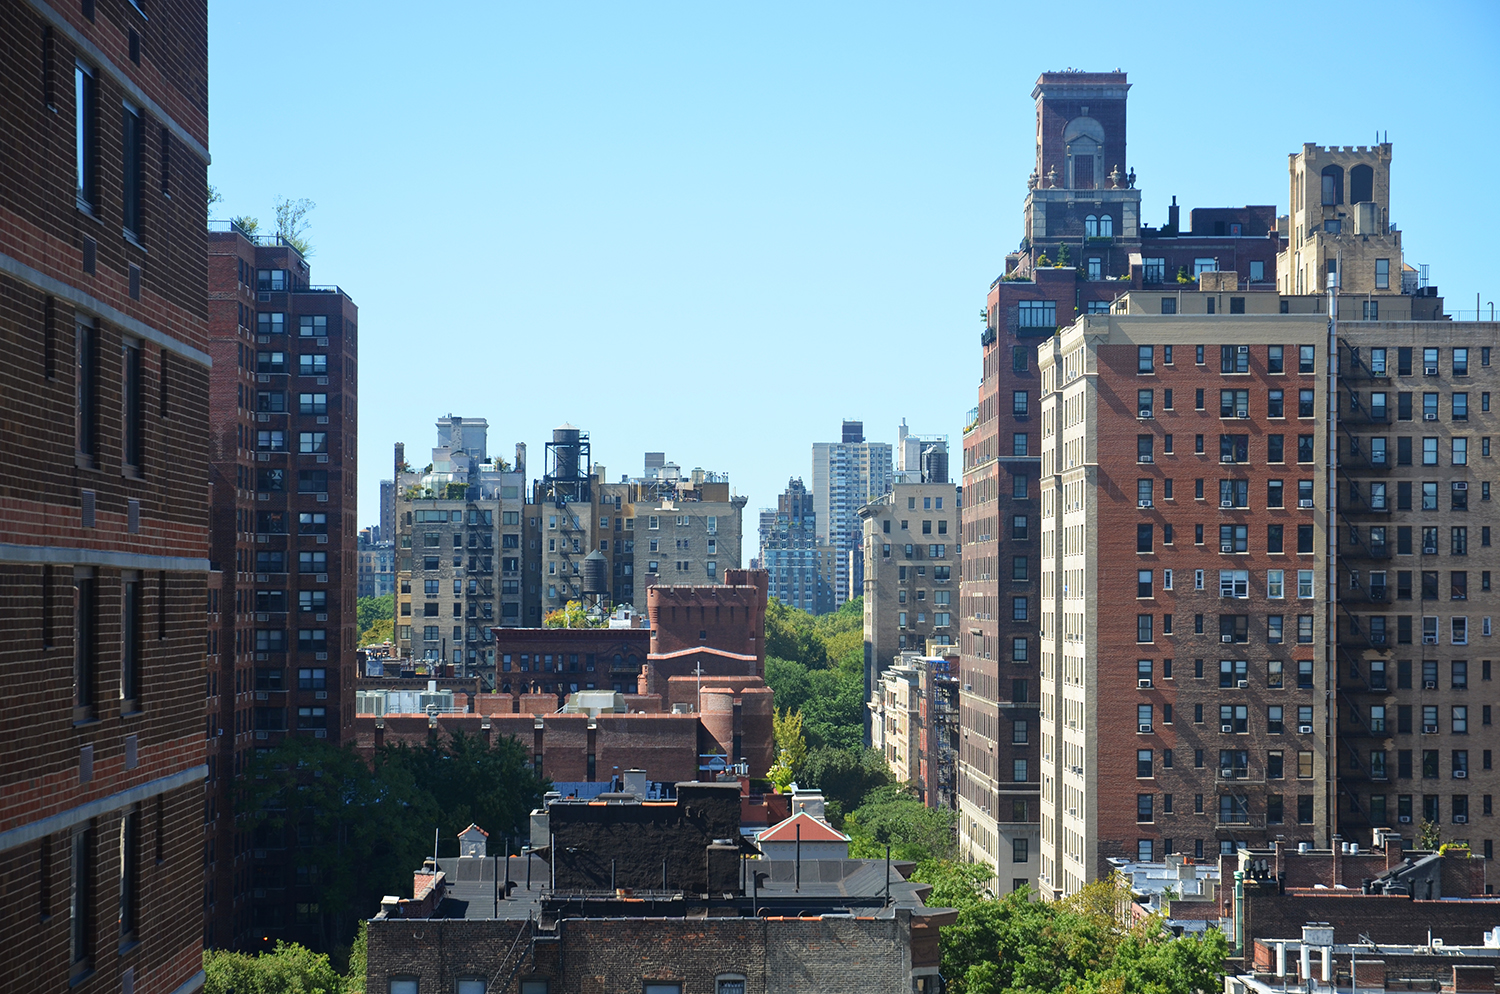 View towards Central Park from The Kent, 200 East 95th Street